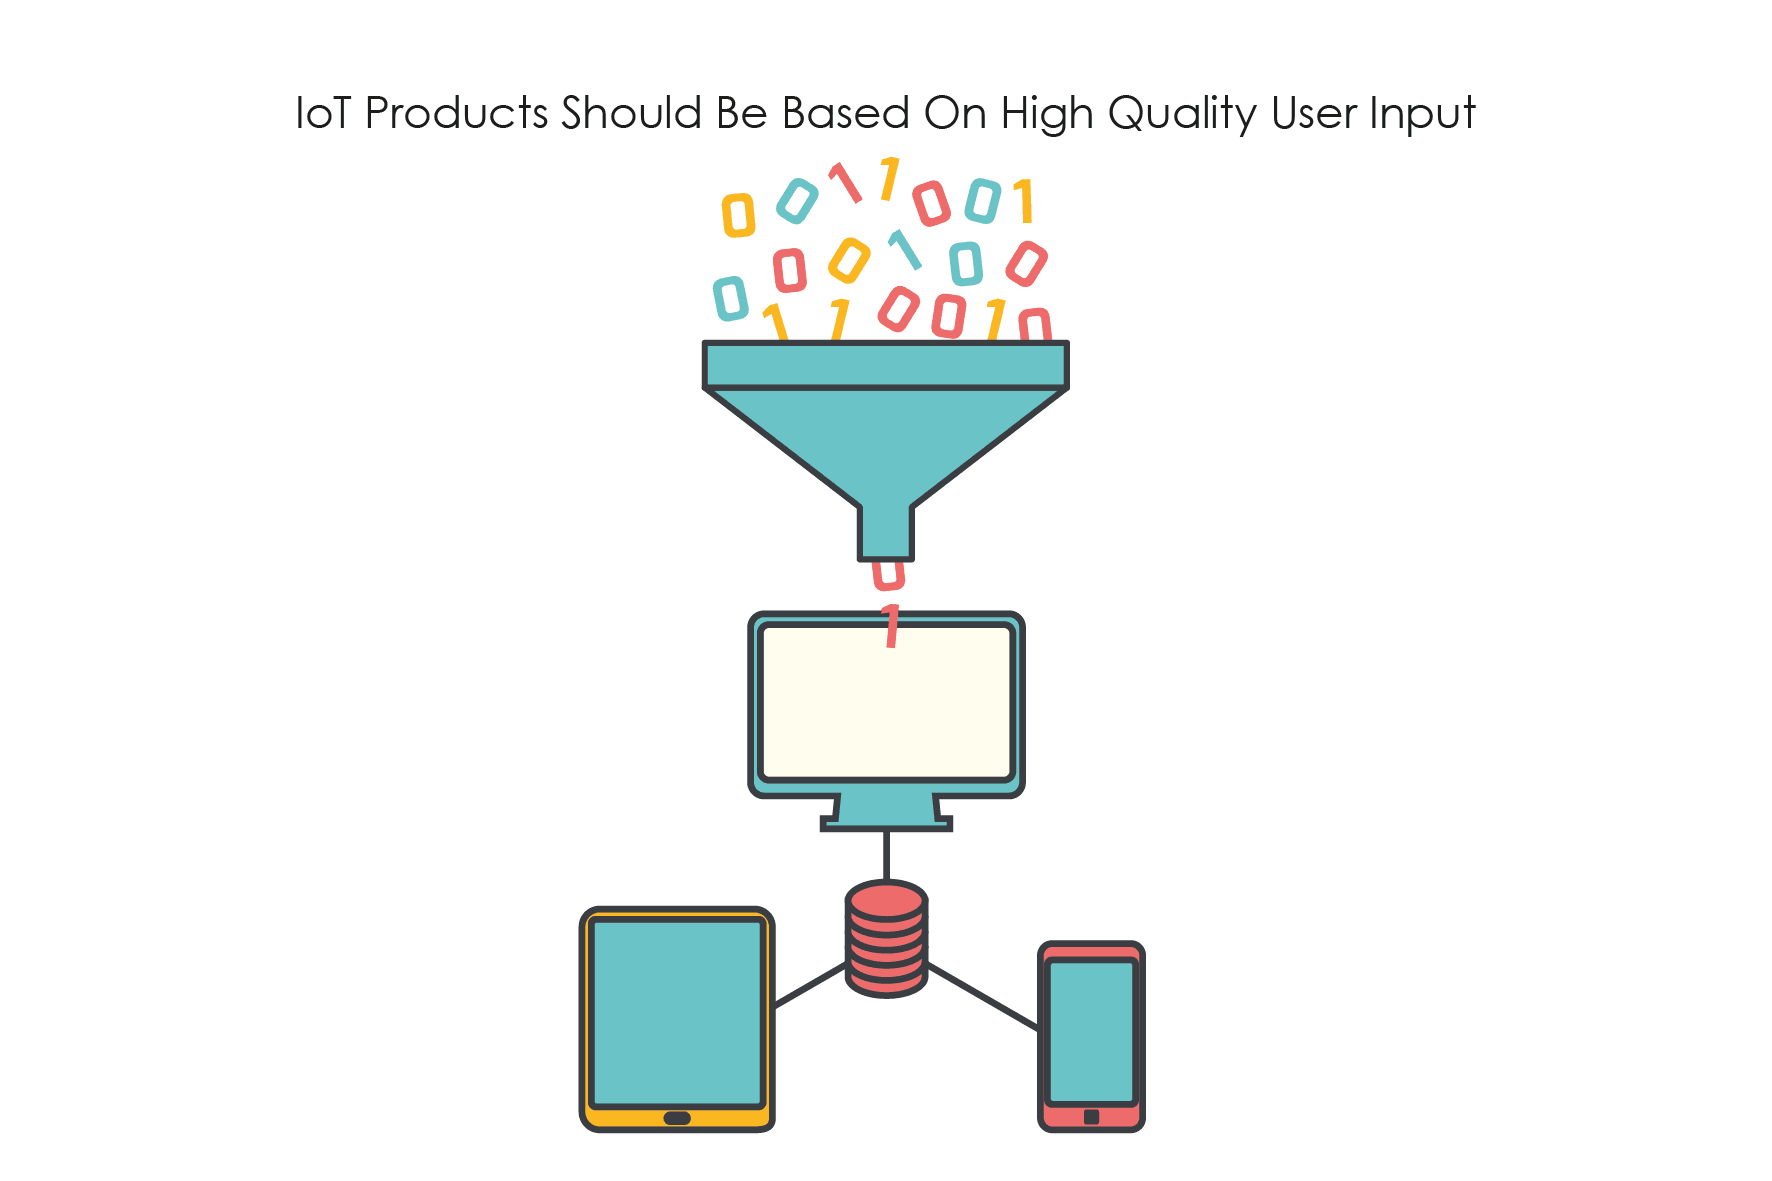 IoT Products Should Be Based On High Quality User Input